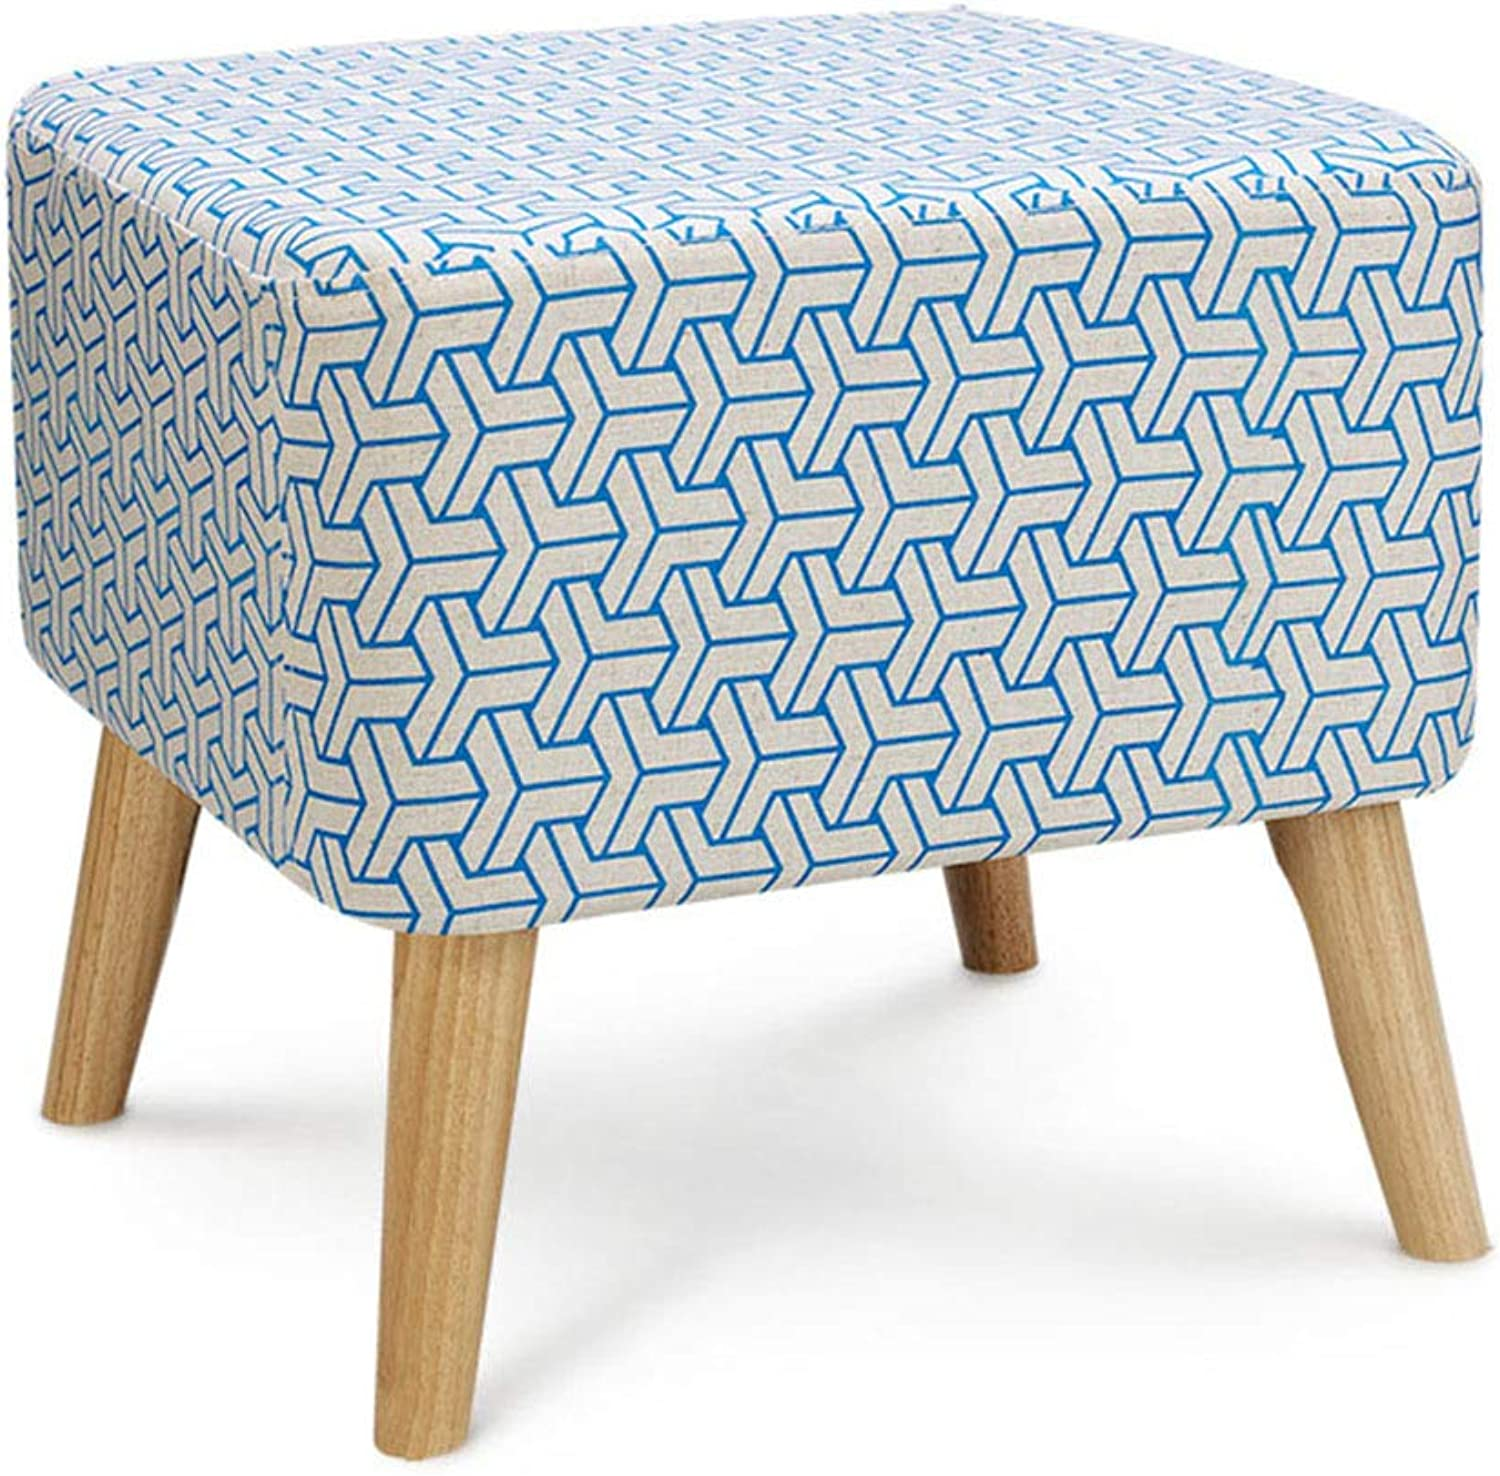 Stool Nordic Wood Retro Fabric Change shoes Sofa Bench Bed End Stool (color   B, Size   40x40cm)